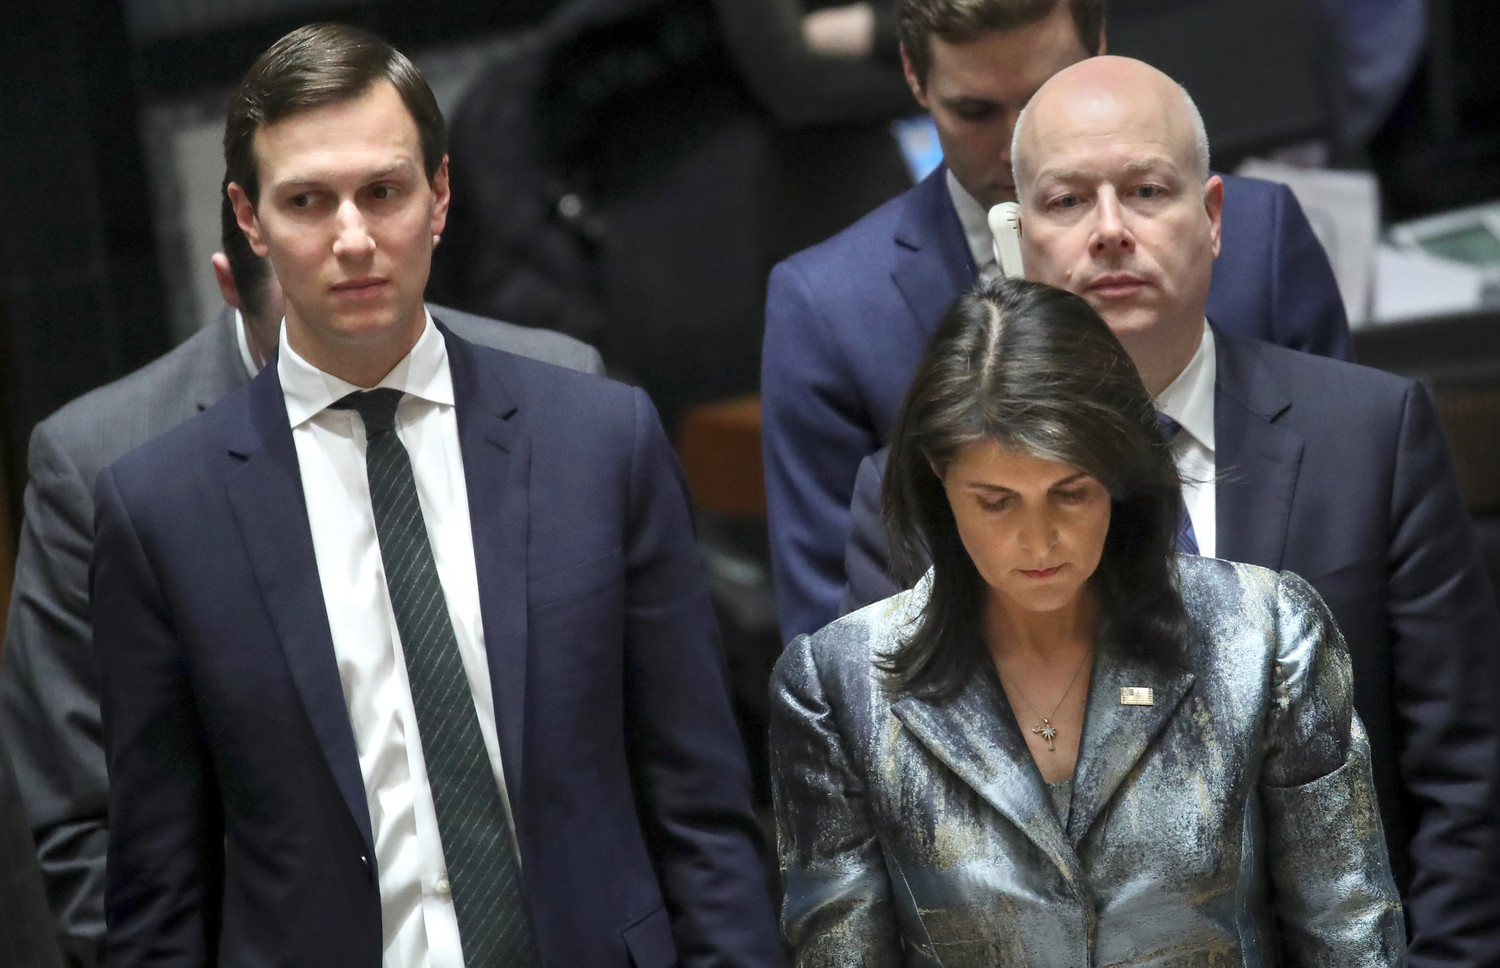 Jared Kushner at a U.N. conference with Ambassador Nikki Haley and his fellow Middle East peace negotiator Jason Greenblatt, on Feb. 20.